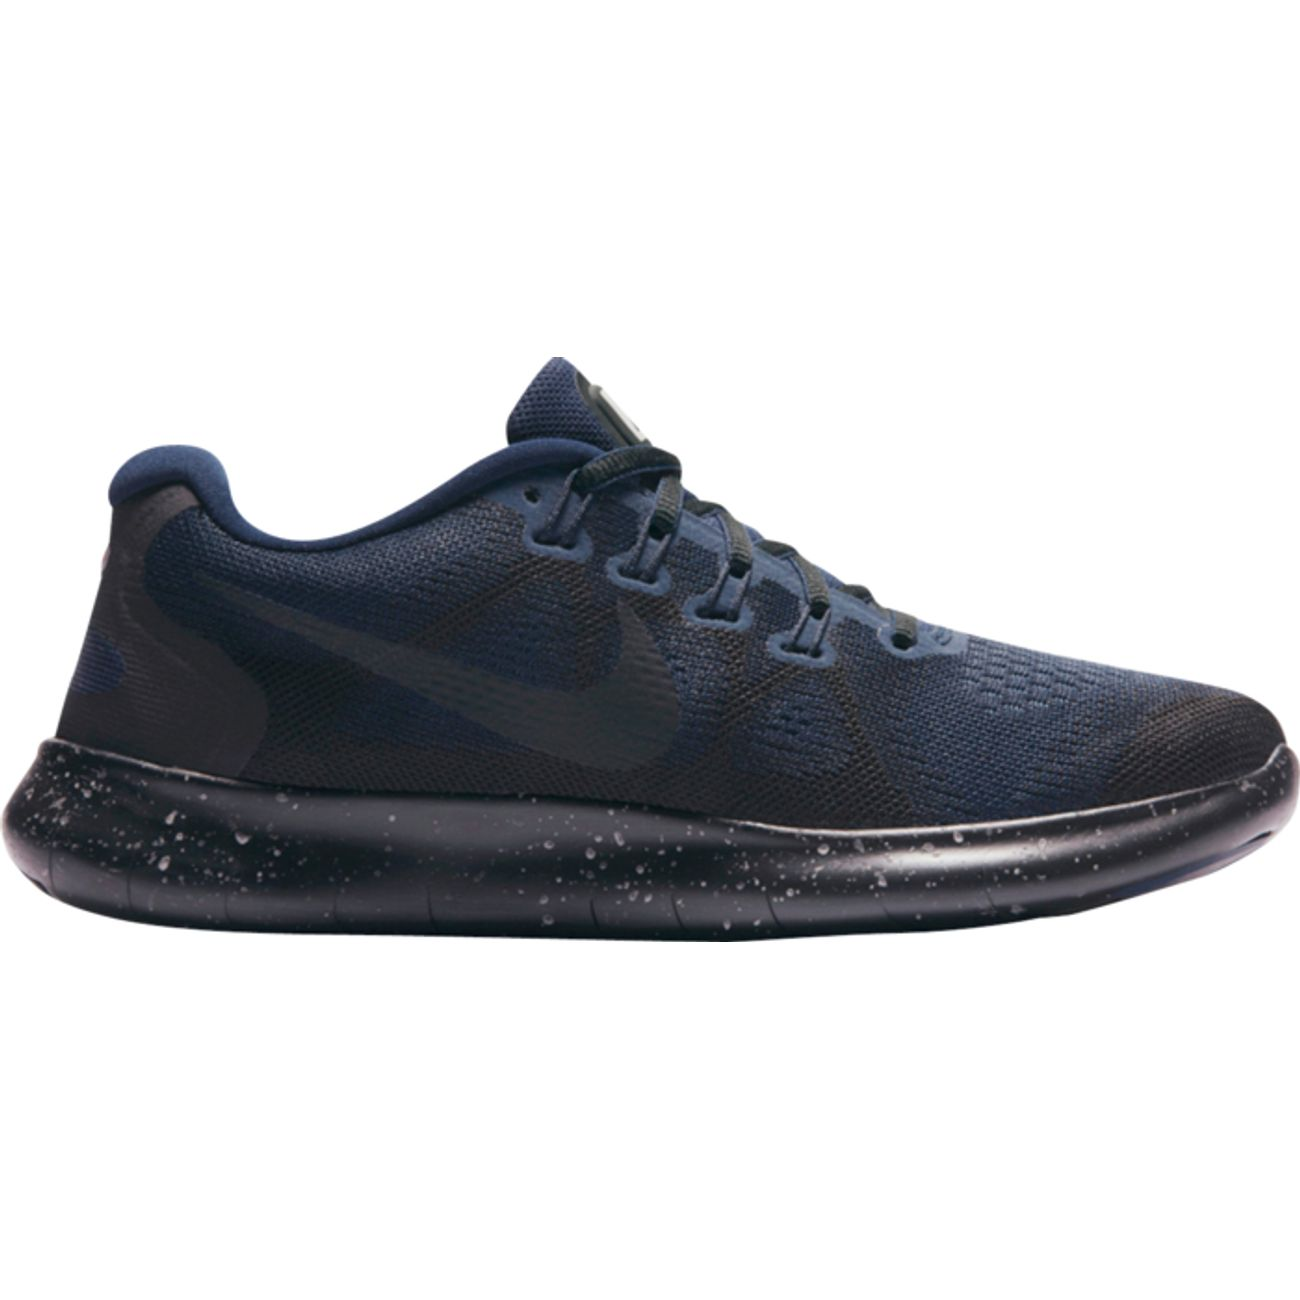 Nike Free RN 2017 Shield Hommes Chaussures Pas Cher Noir